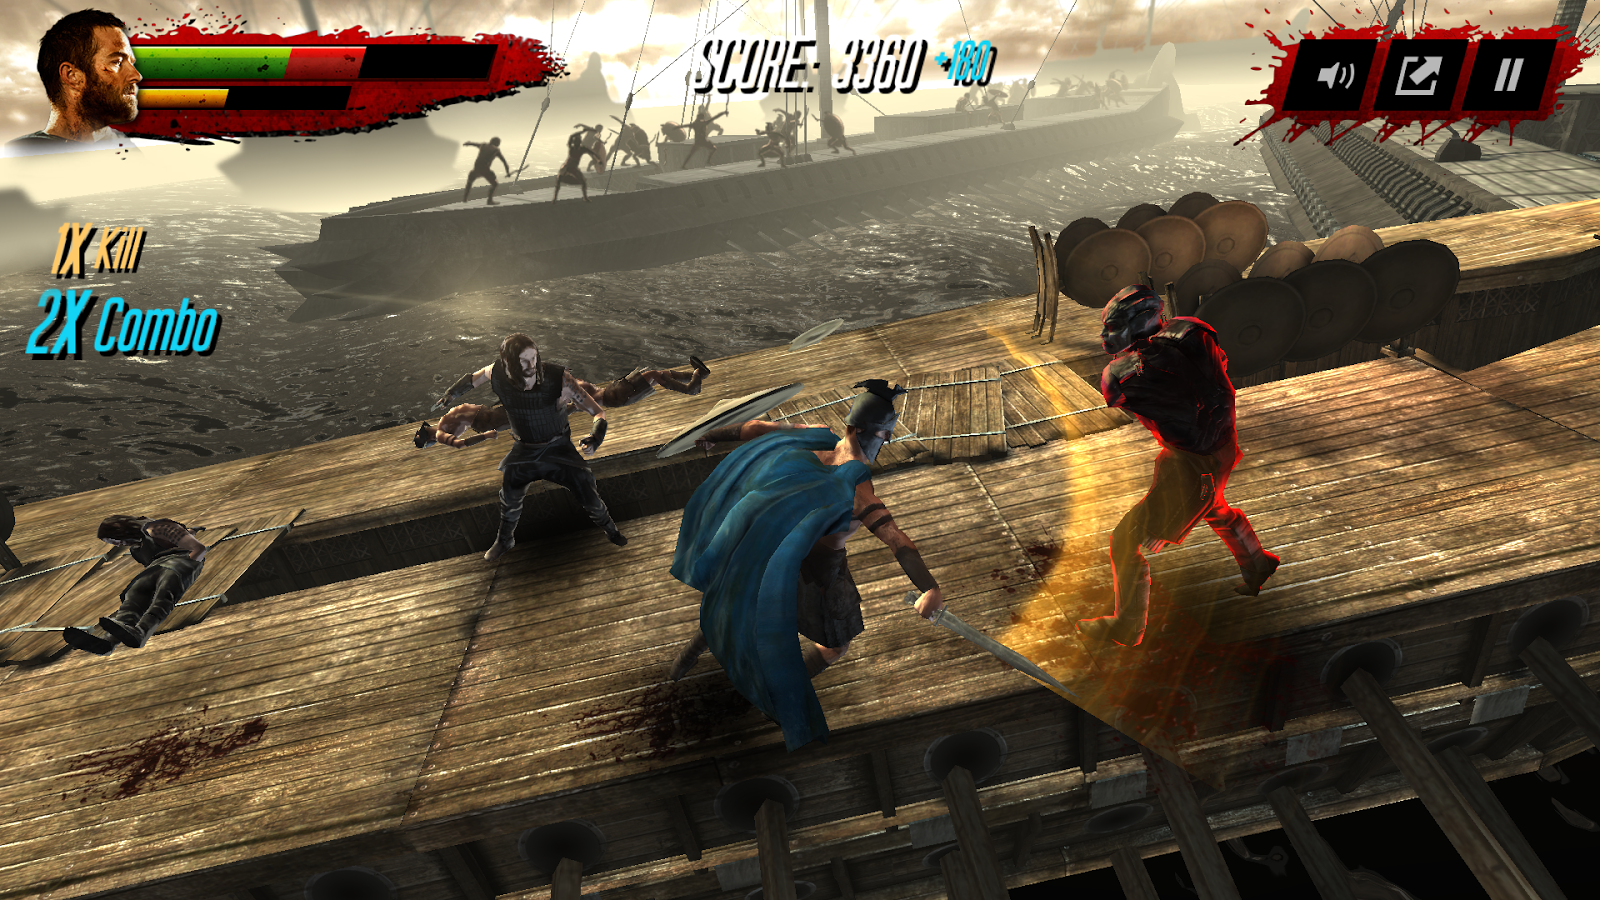 300 Seize Your Glory full apk game